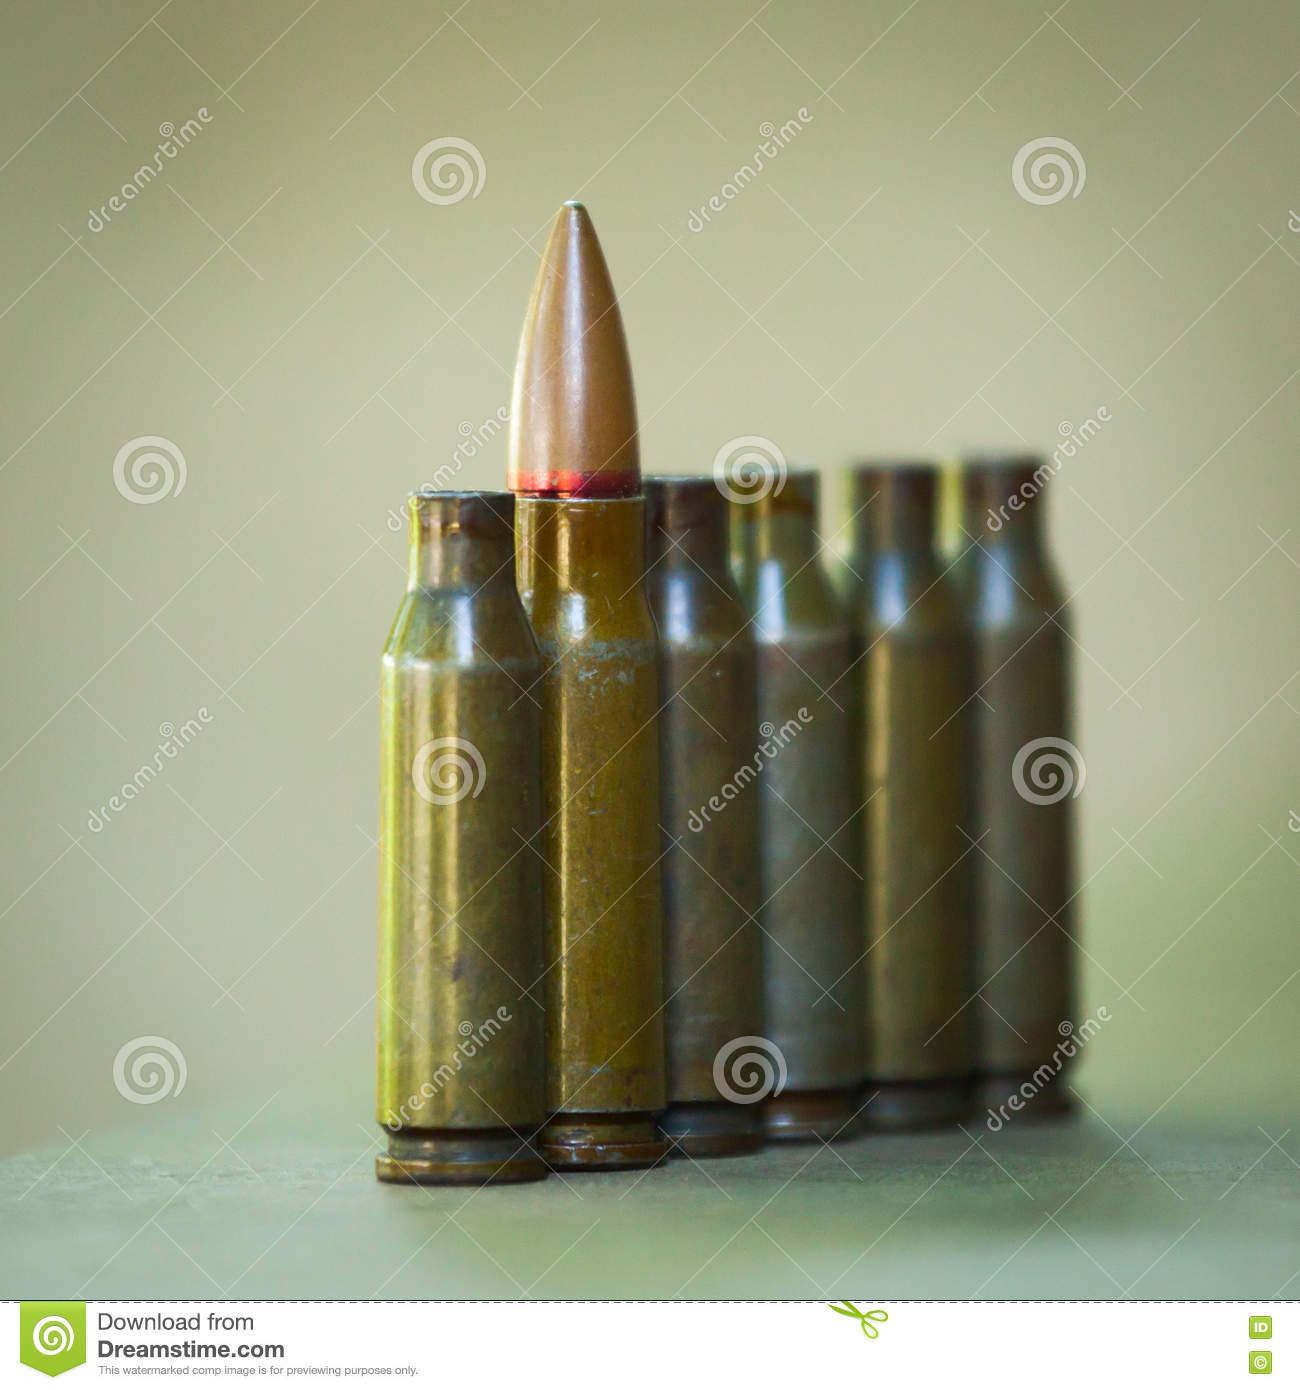 Ammo With And Without Bullets Stock Image - Image of strength